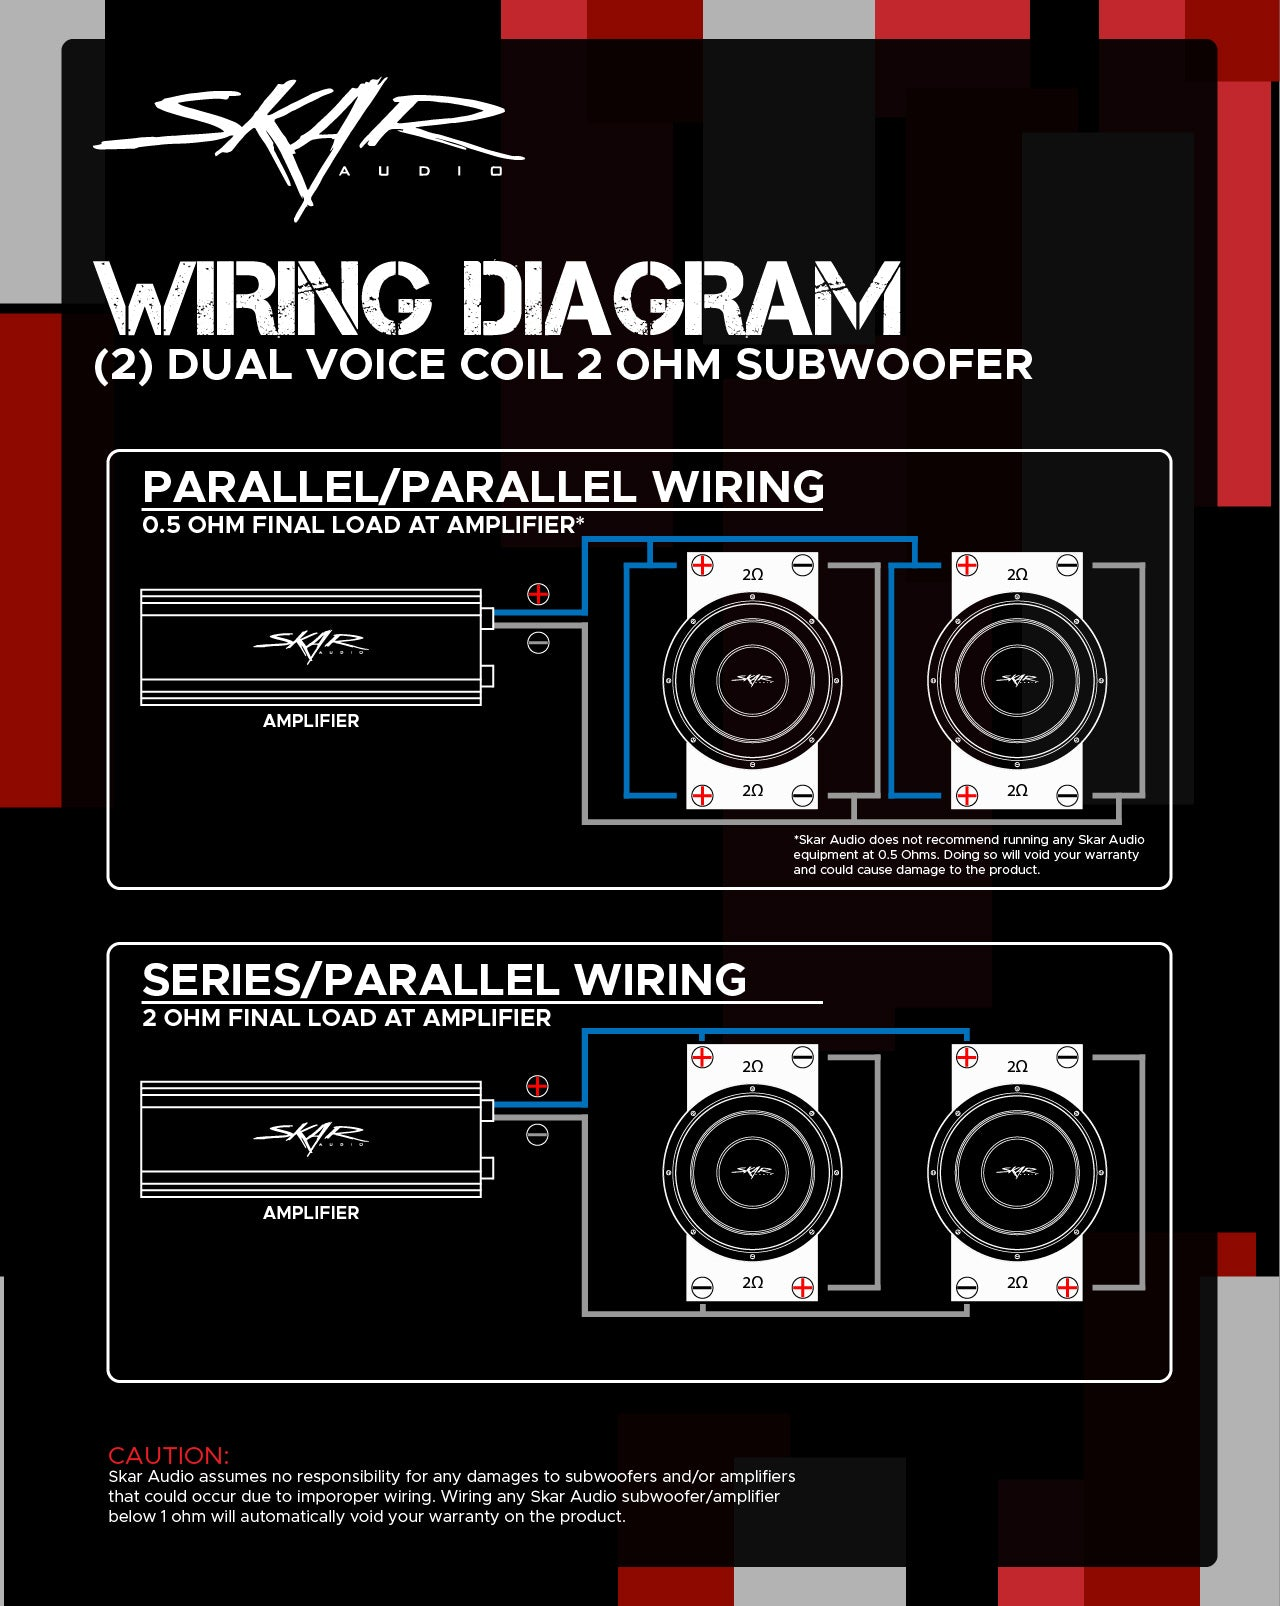 Parallel Sub Wiring Diagram from cdn.shopify.com